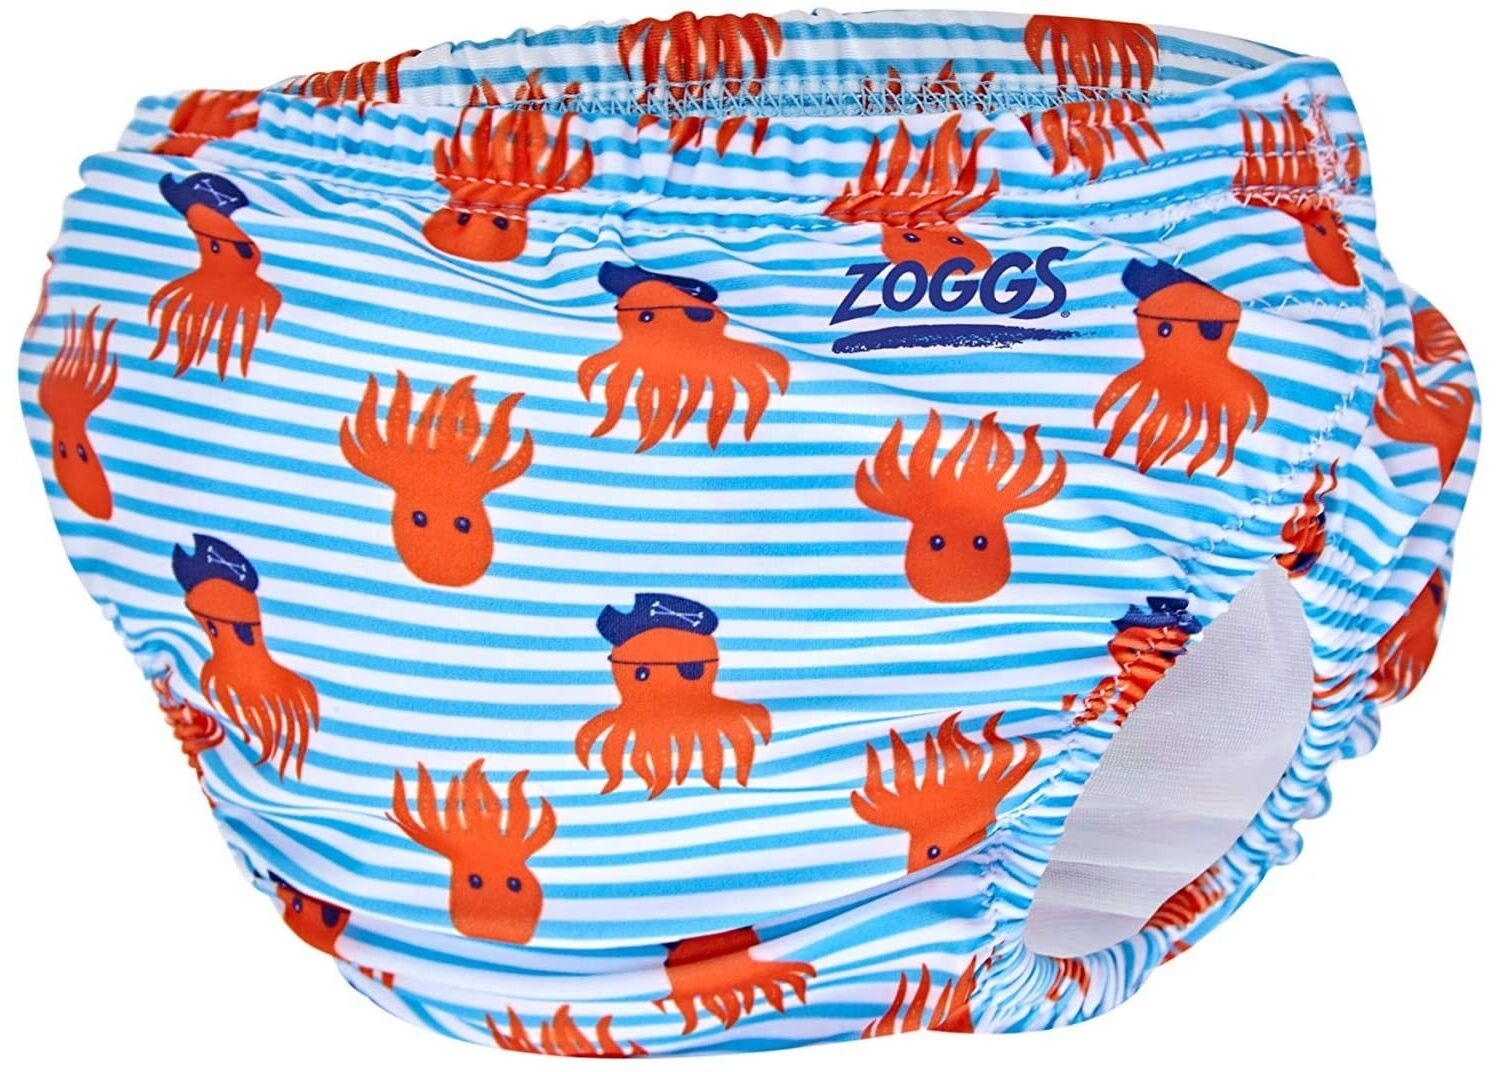 Zoggs Adjustable Reusable Baby Swim Nappy one size 3 to 24 mths - Choose your design - Octo Pirate